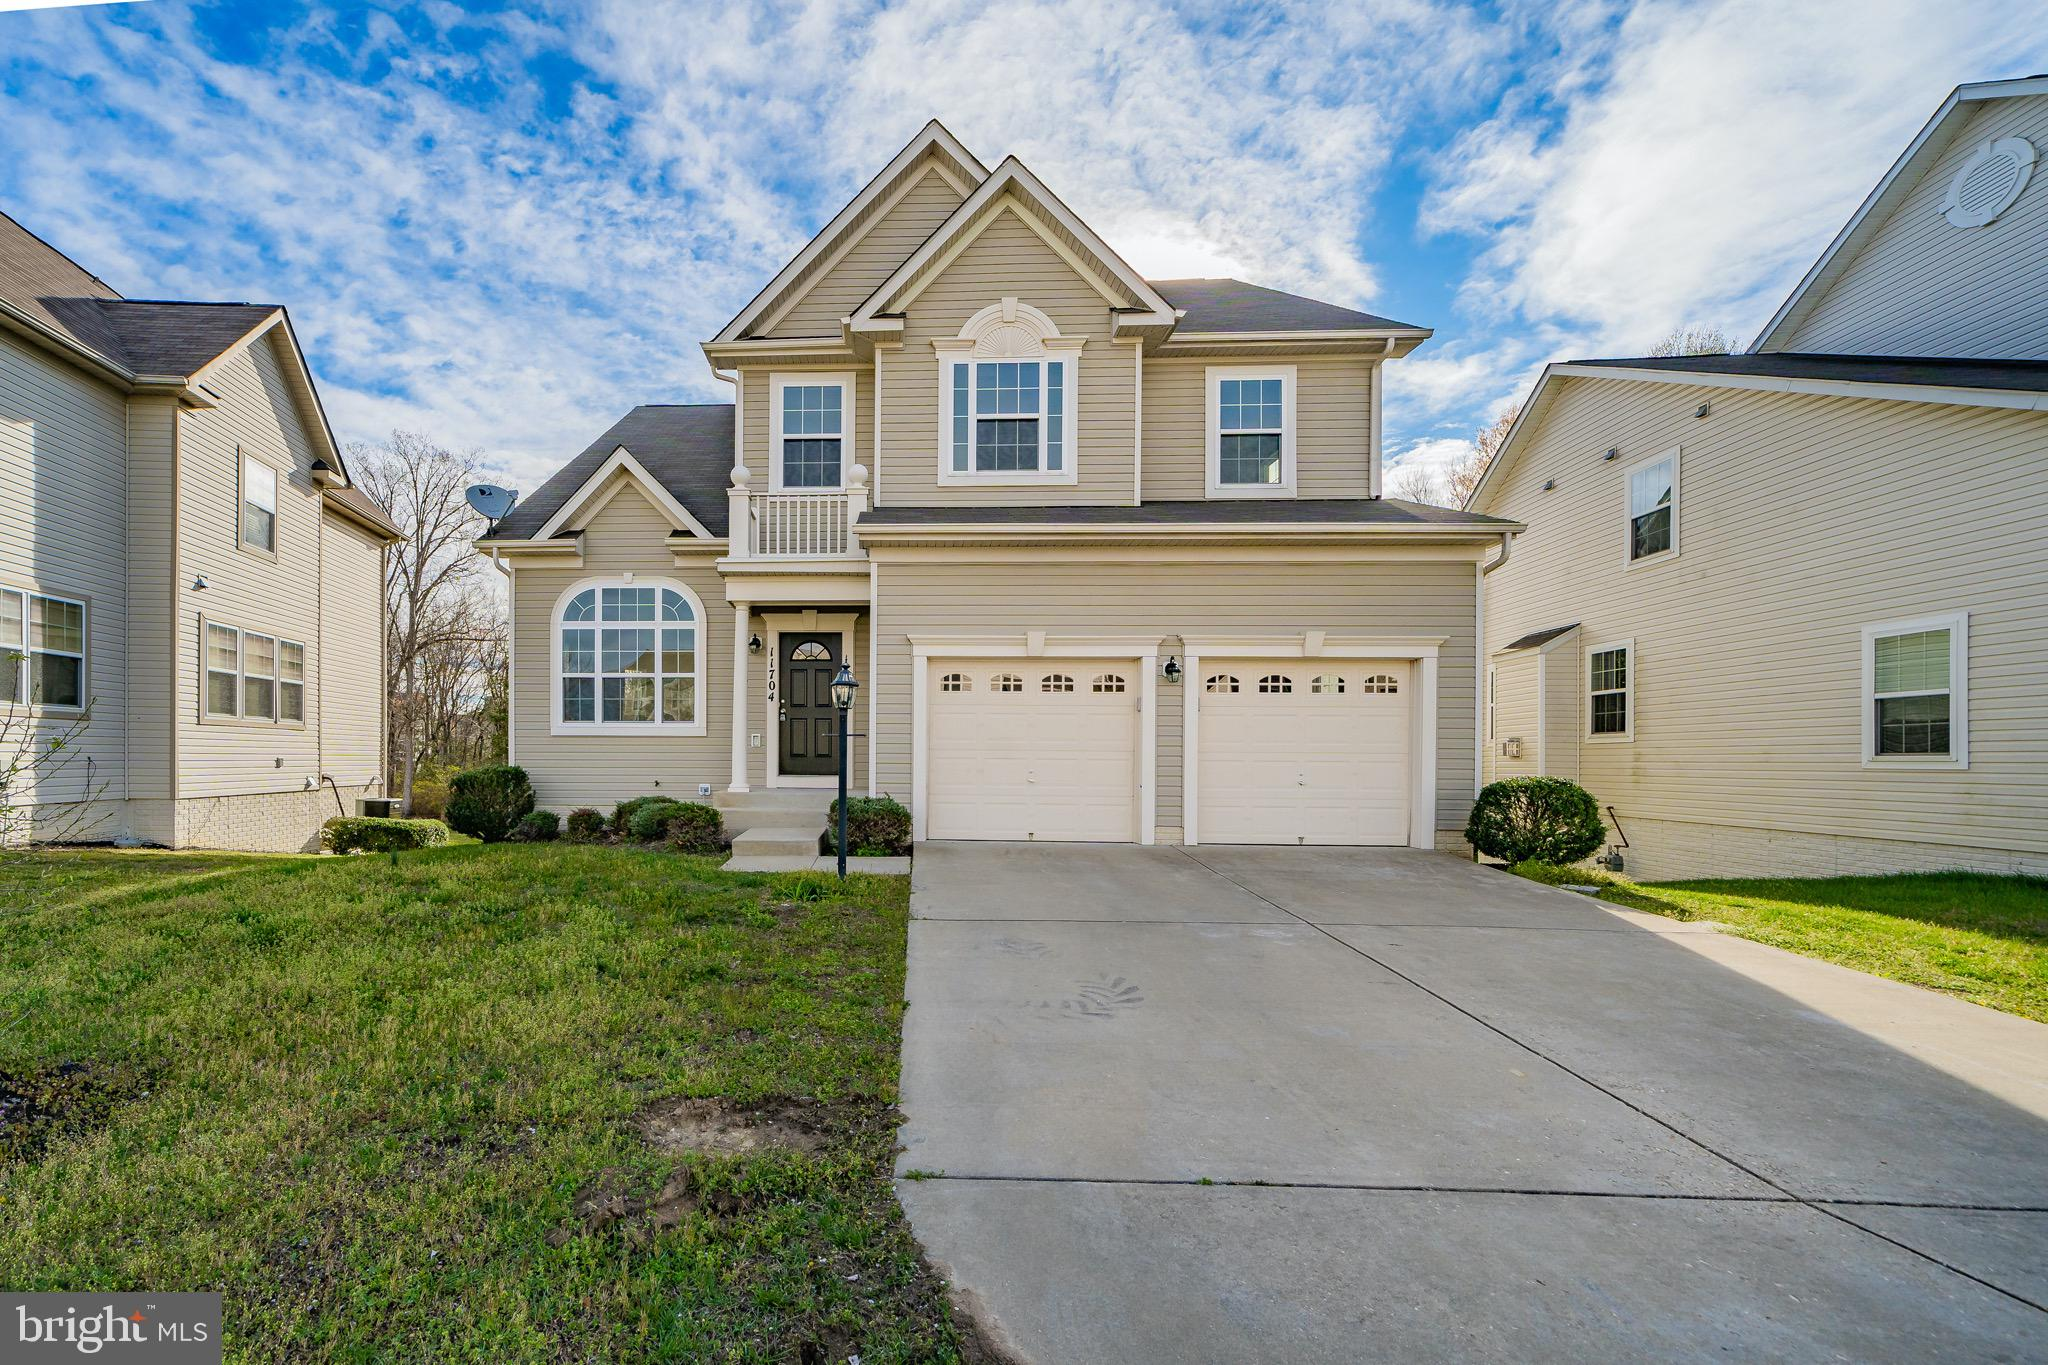 Stunning home located in prime location of Waldorf. Offers 3 levels, 4 bedrooms with 3 full and 1 ha